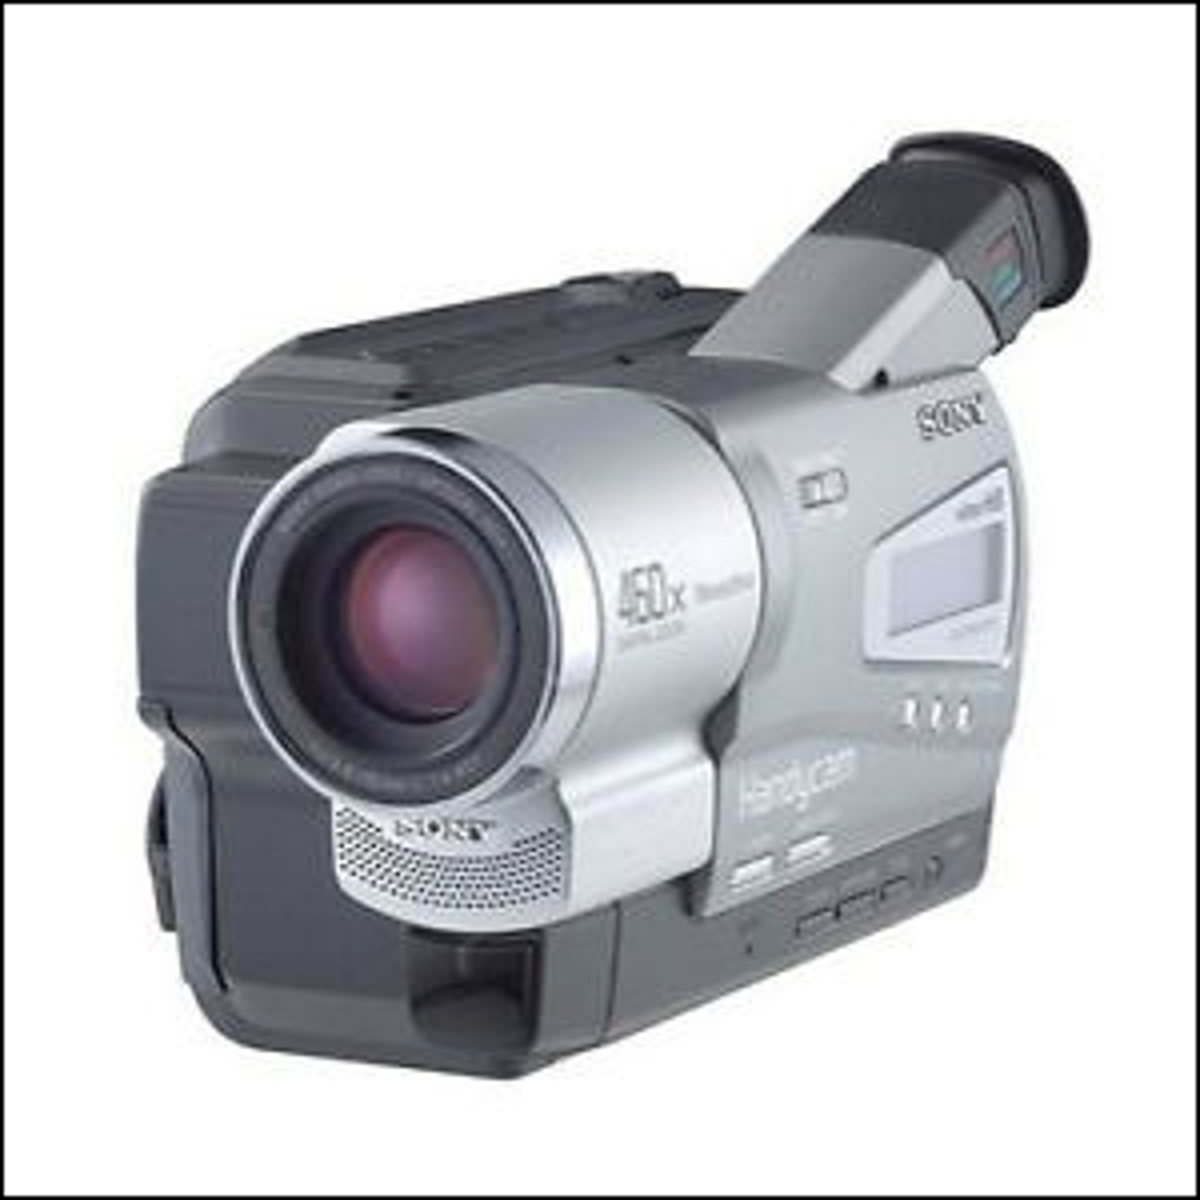 Photo of a handheld Sony camcorder.